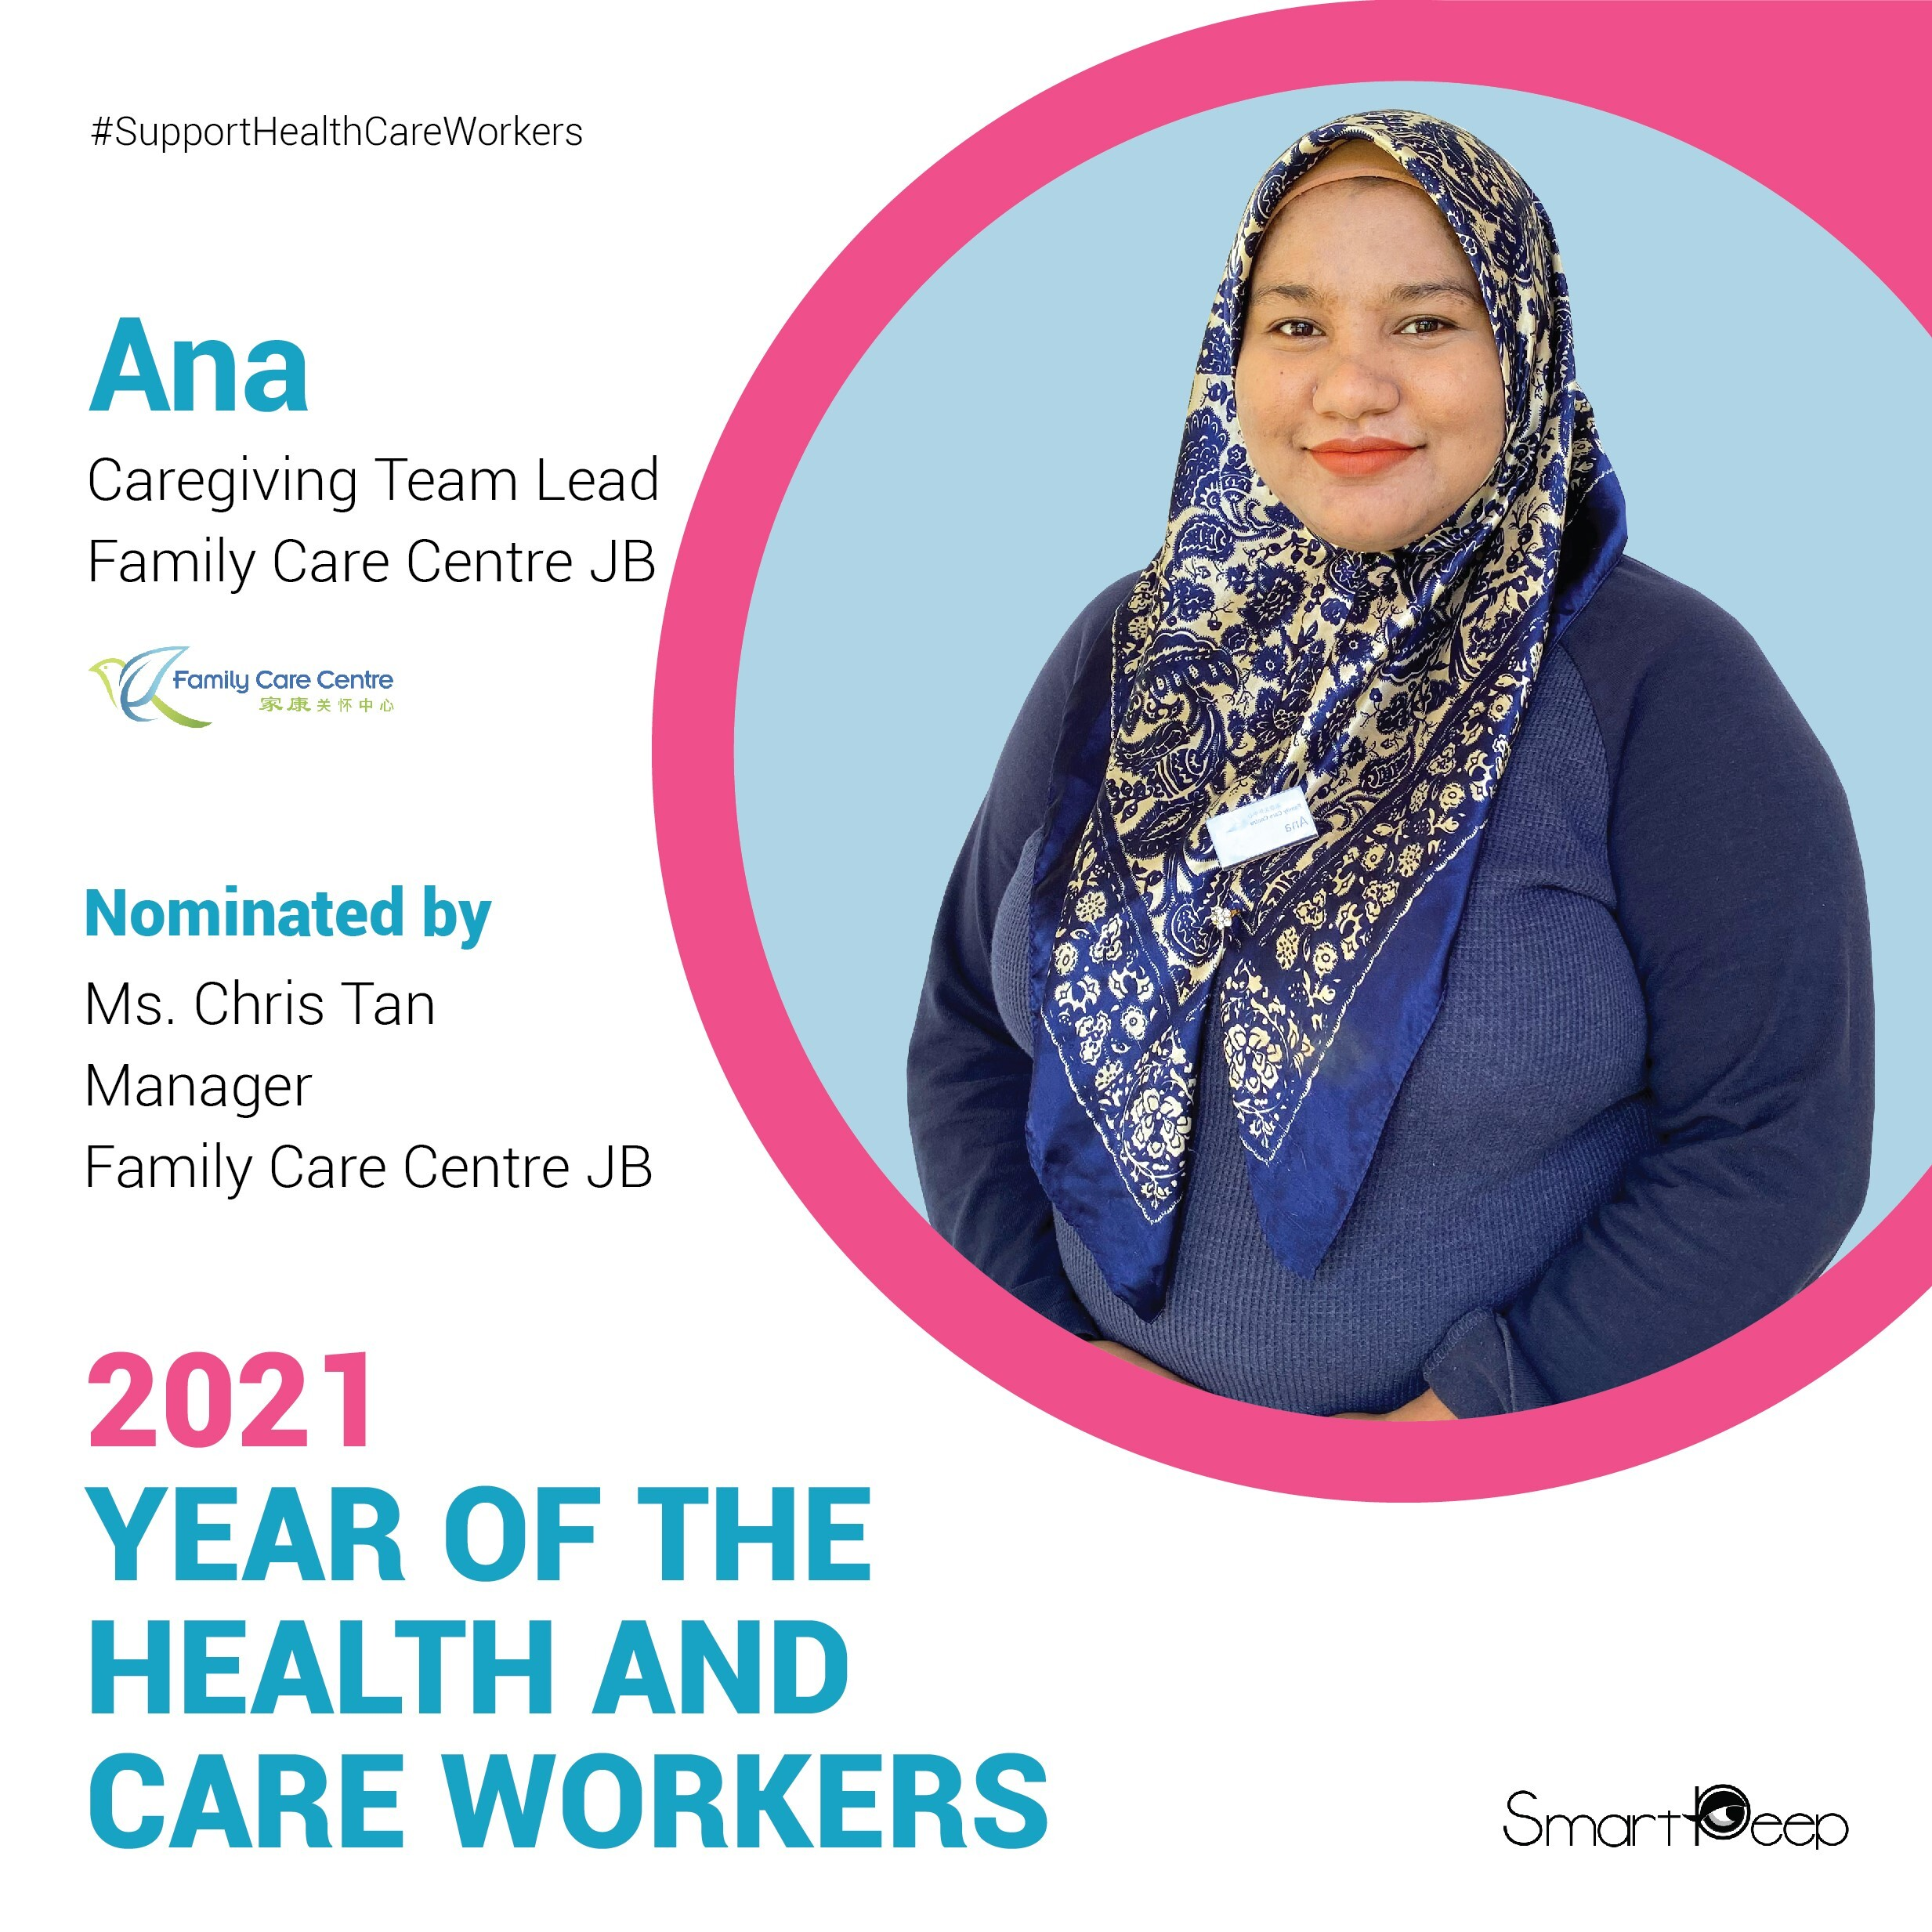 Meet the Care Champion Hero for World Health Worker Week, Ms.Ana from FCCJB